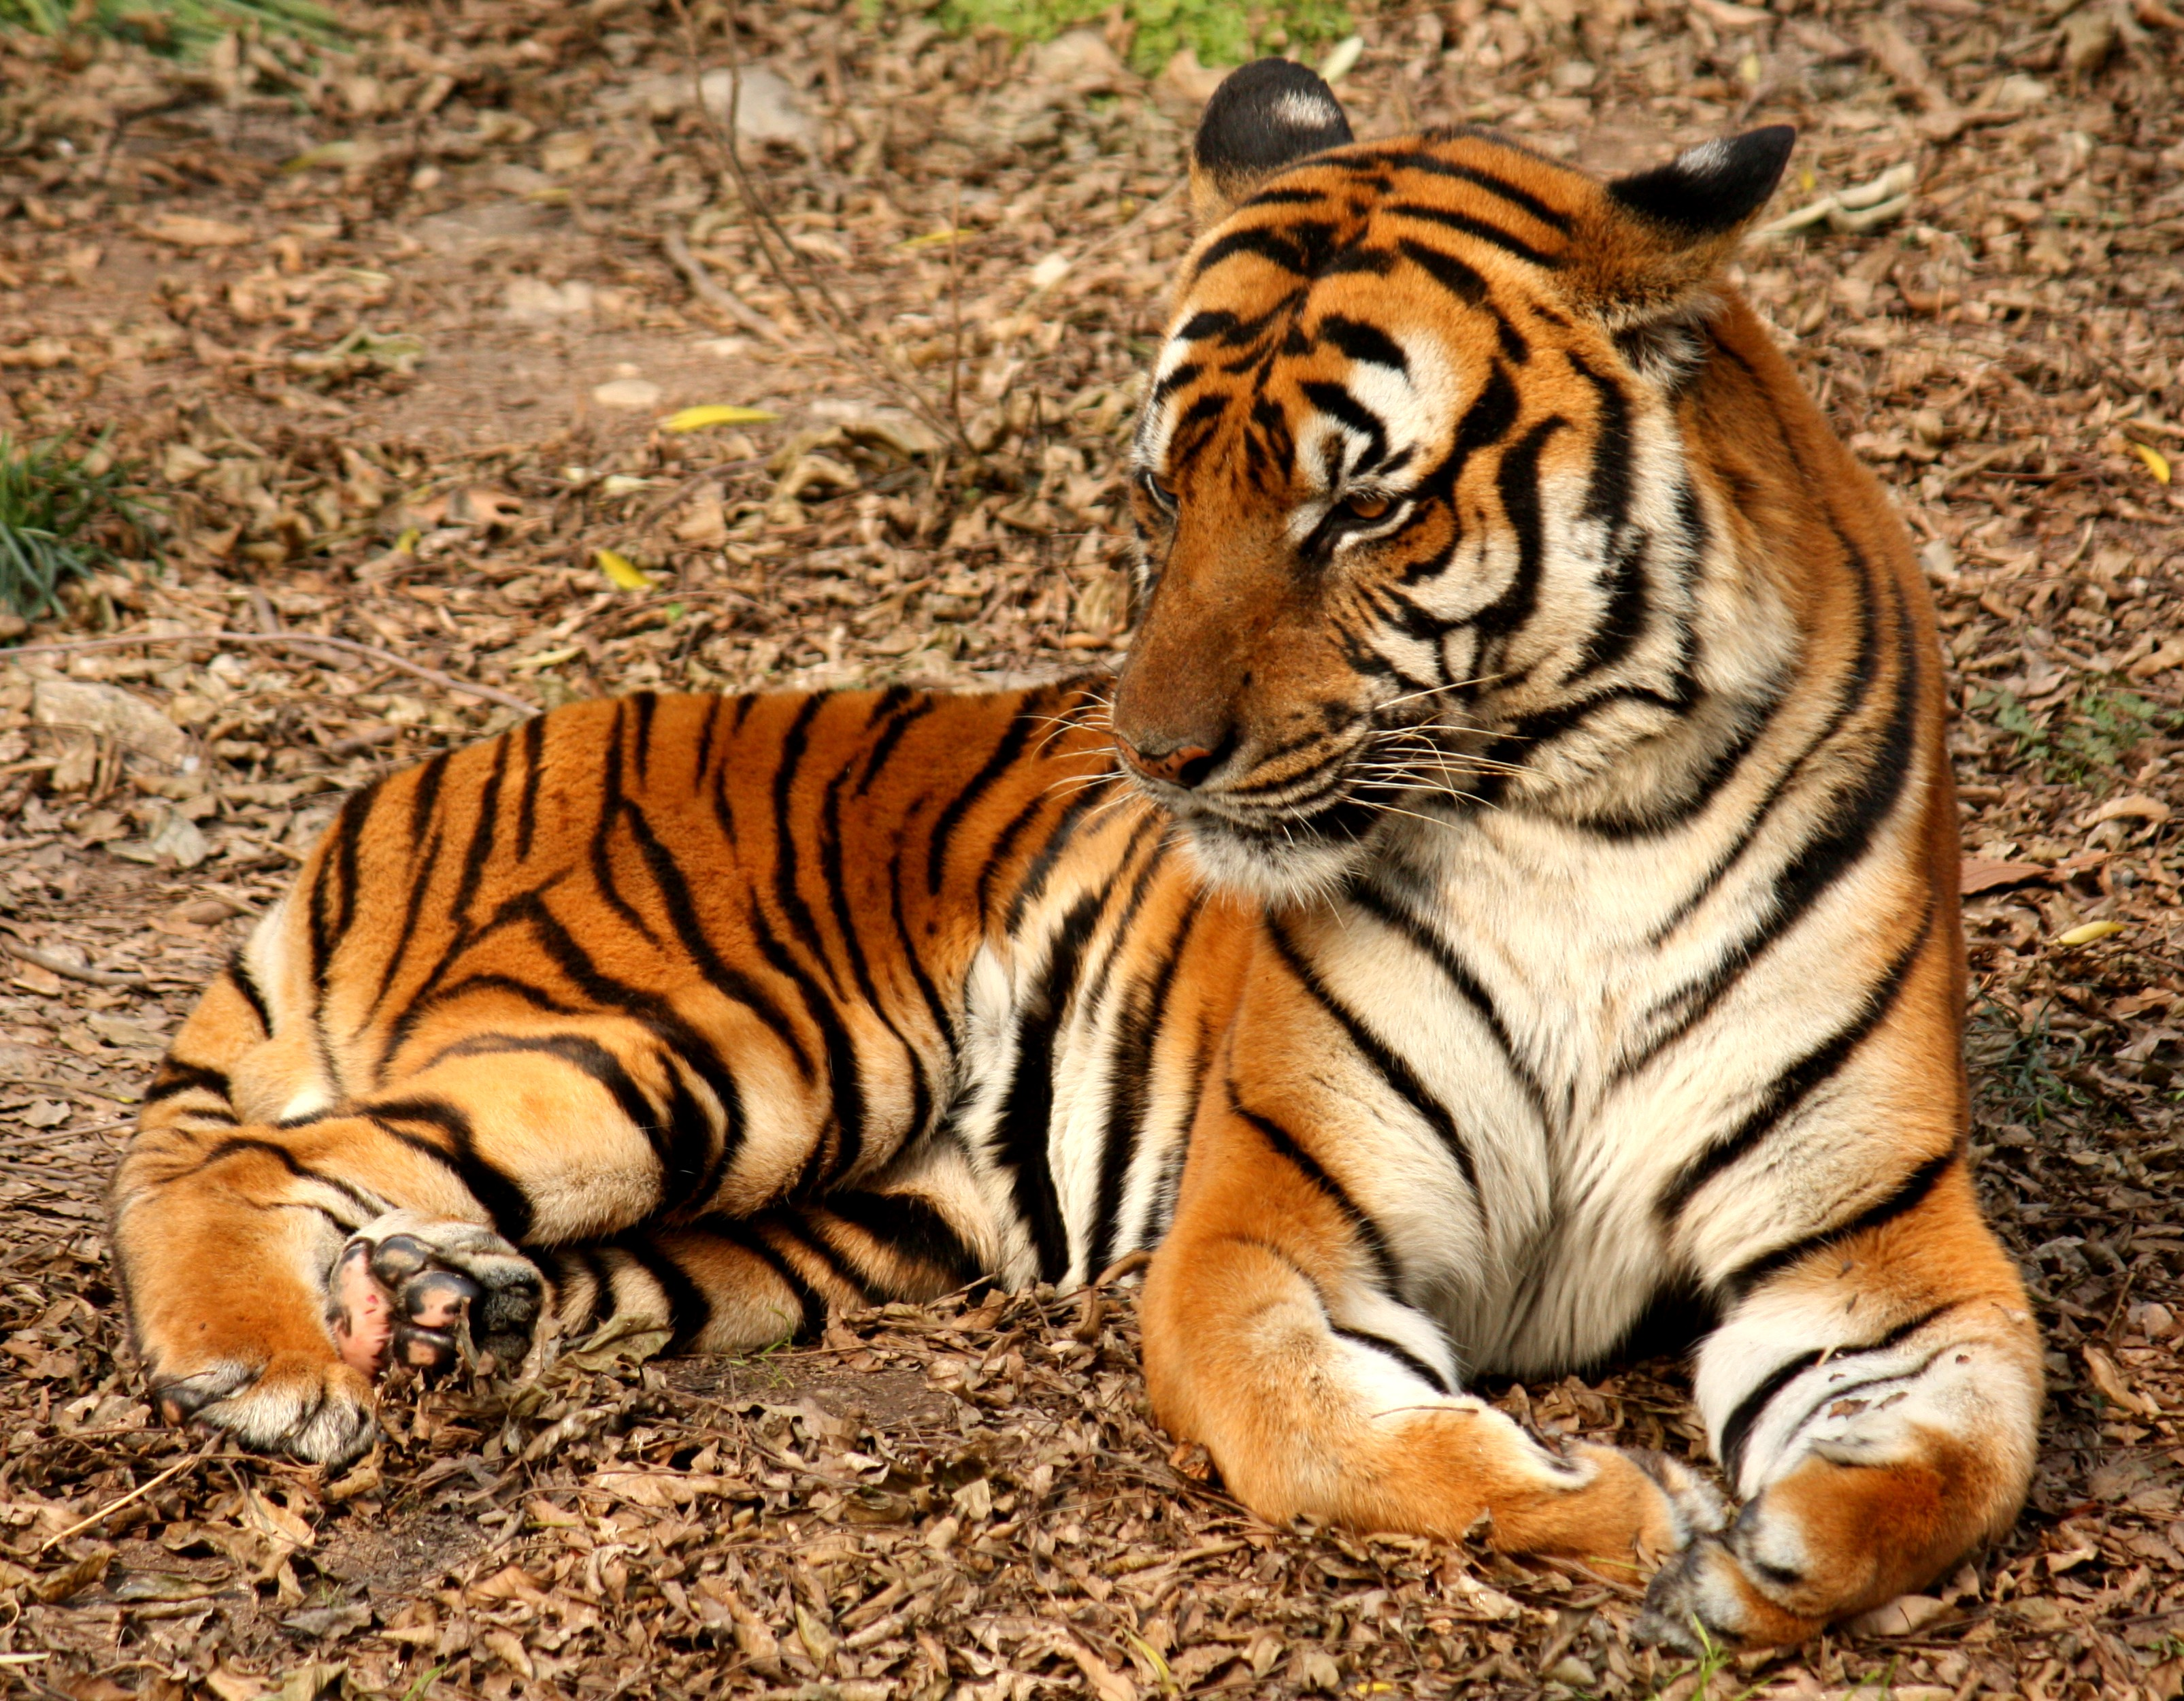 south china tiger - wikipedia